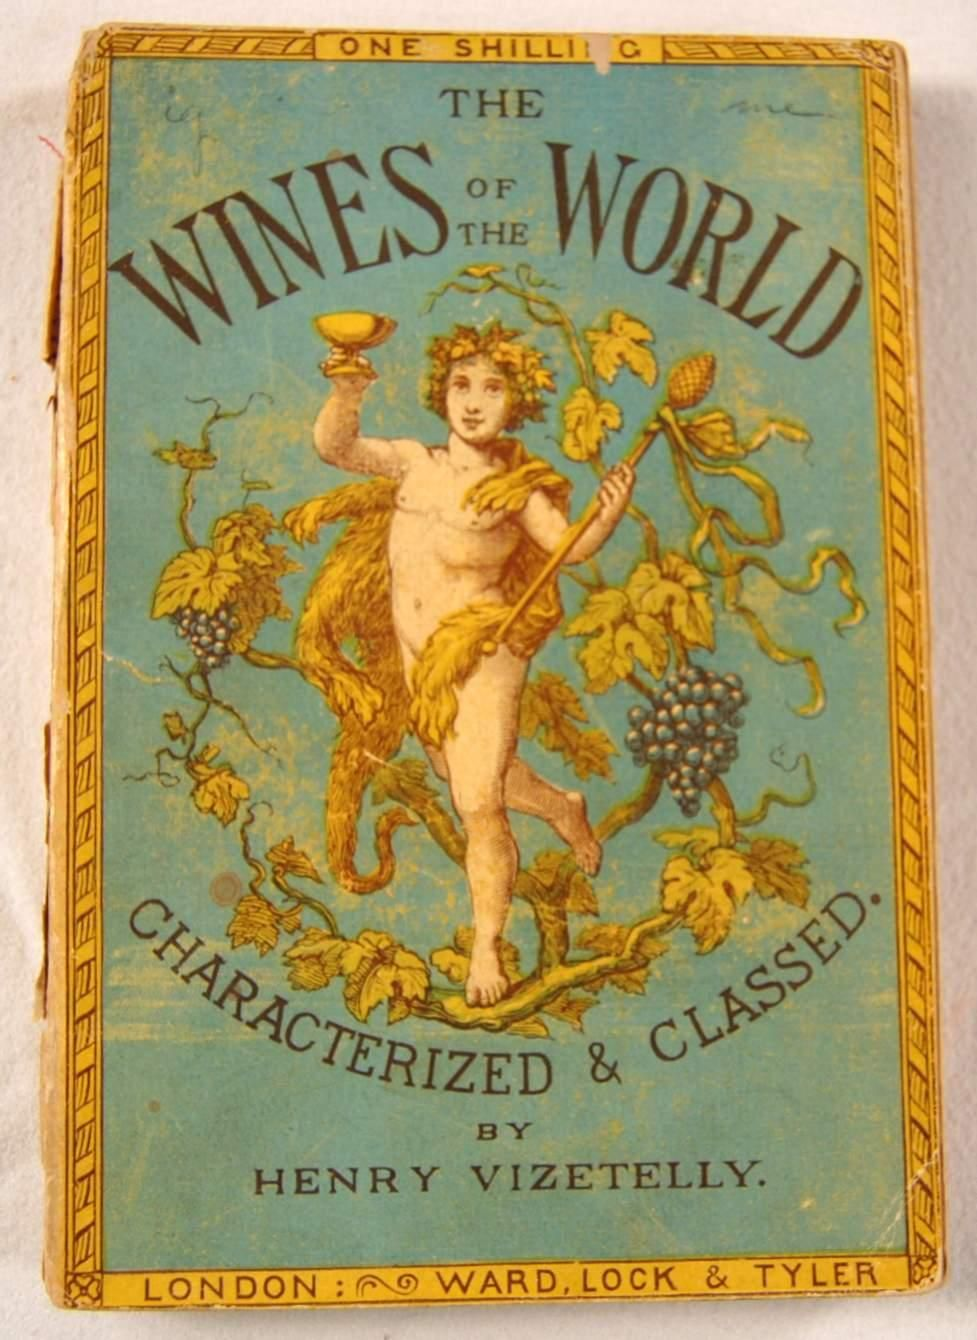 The Wines of the World Characterized & Classed: With Some ...